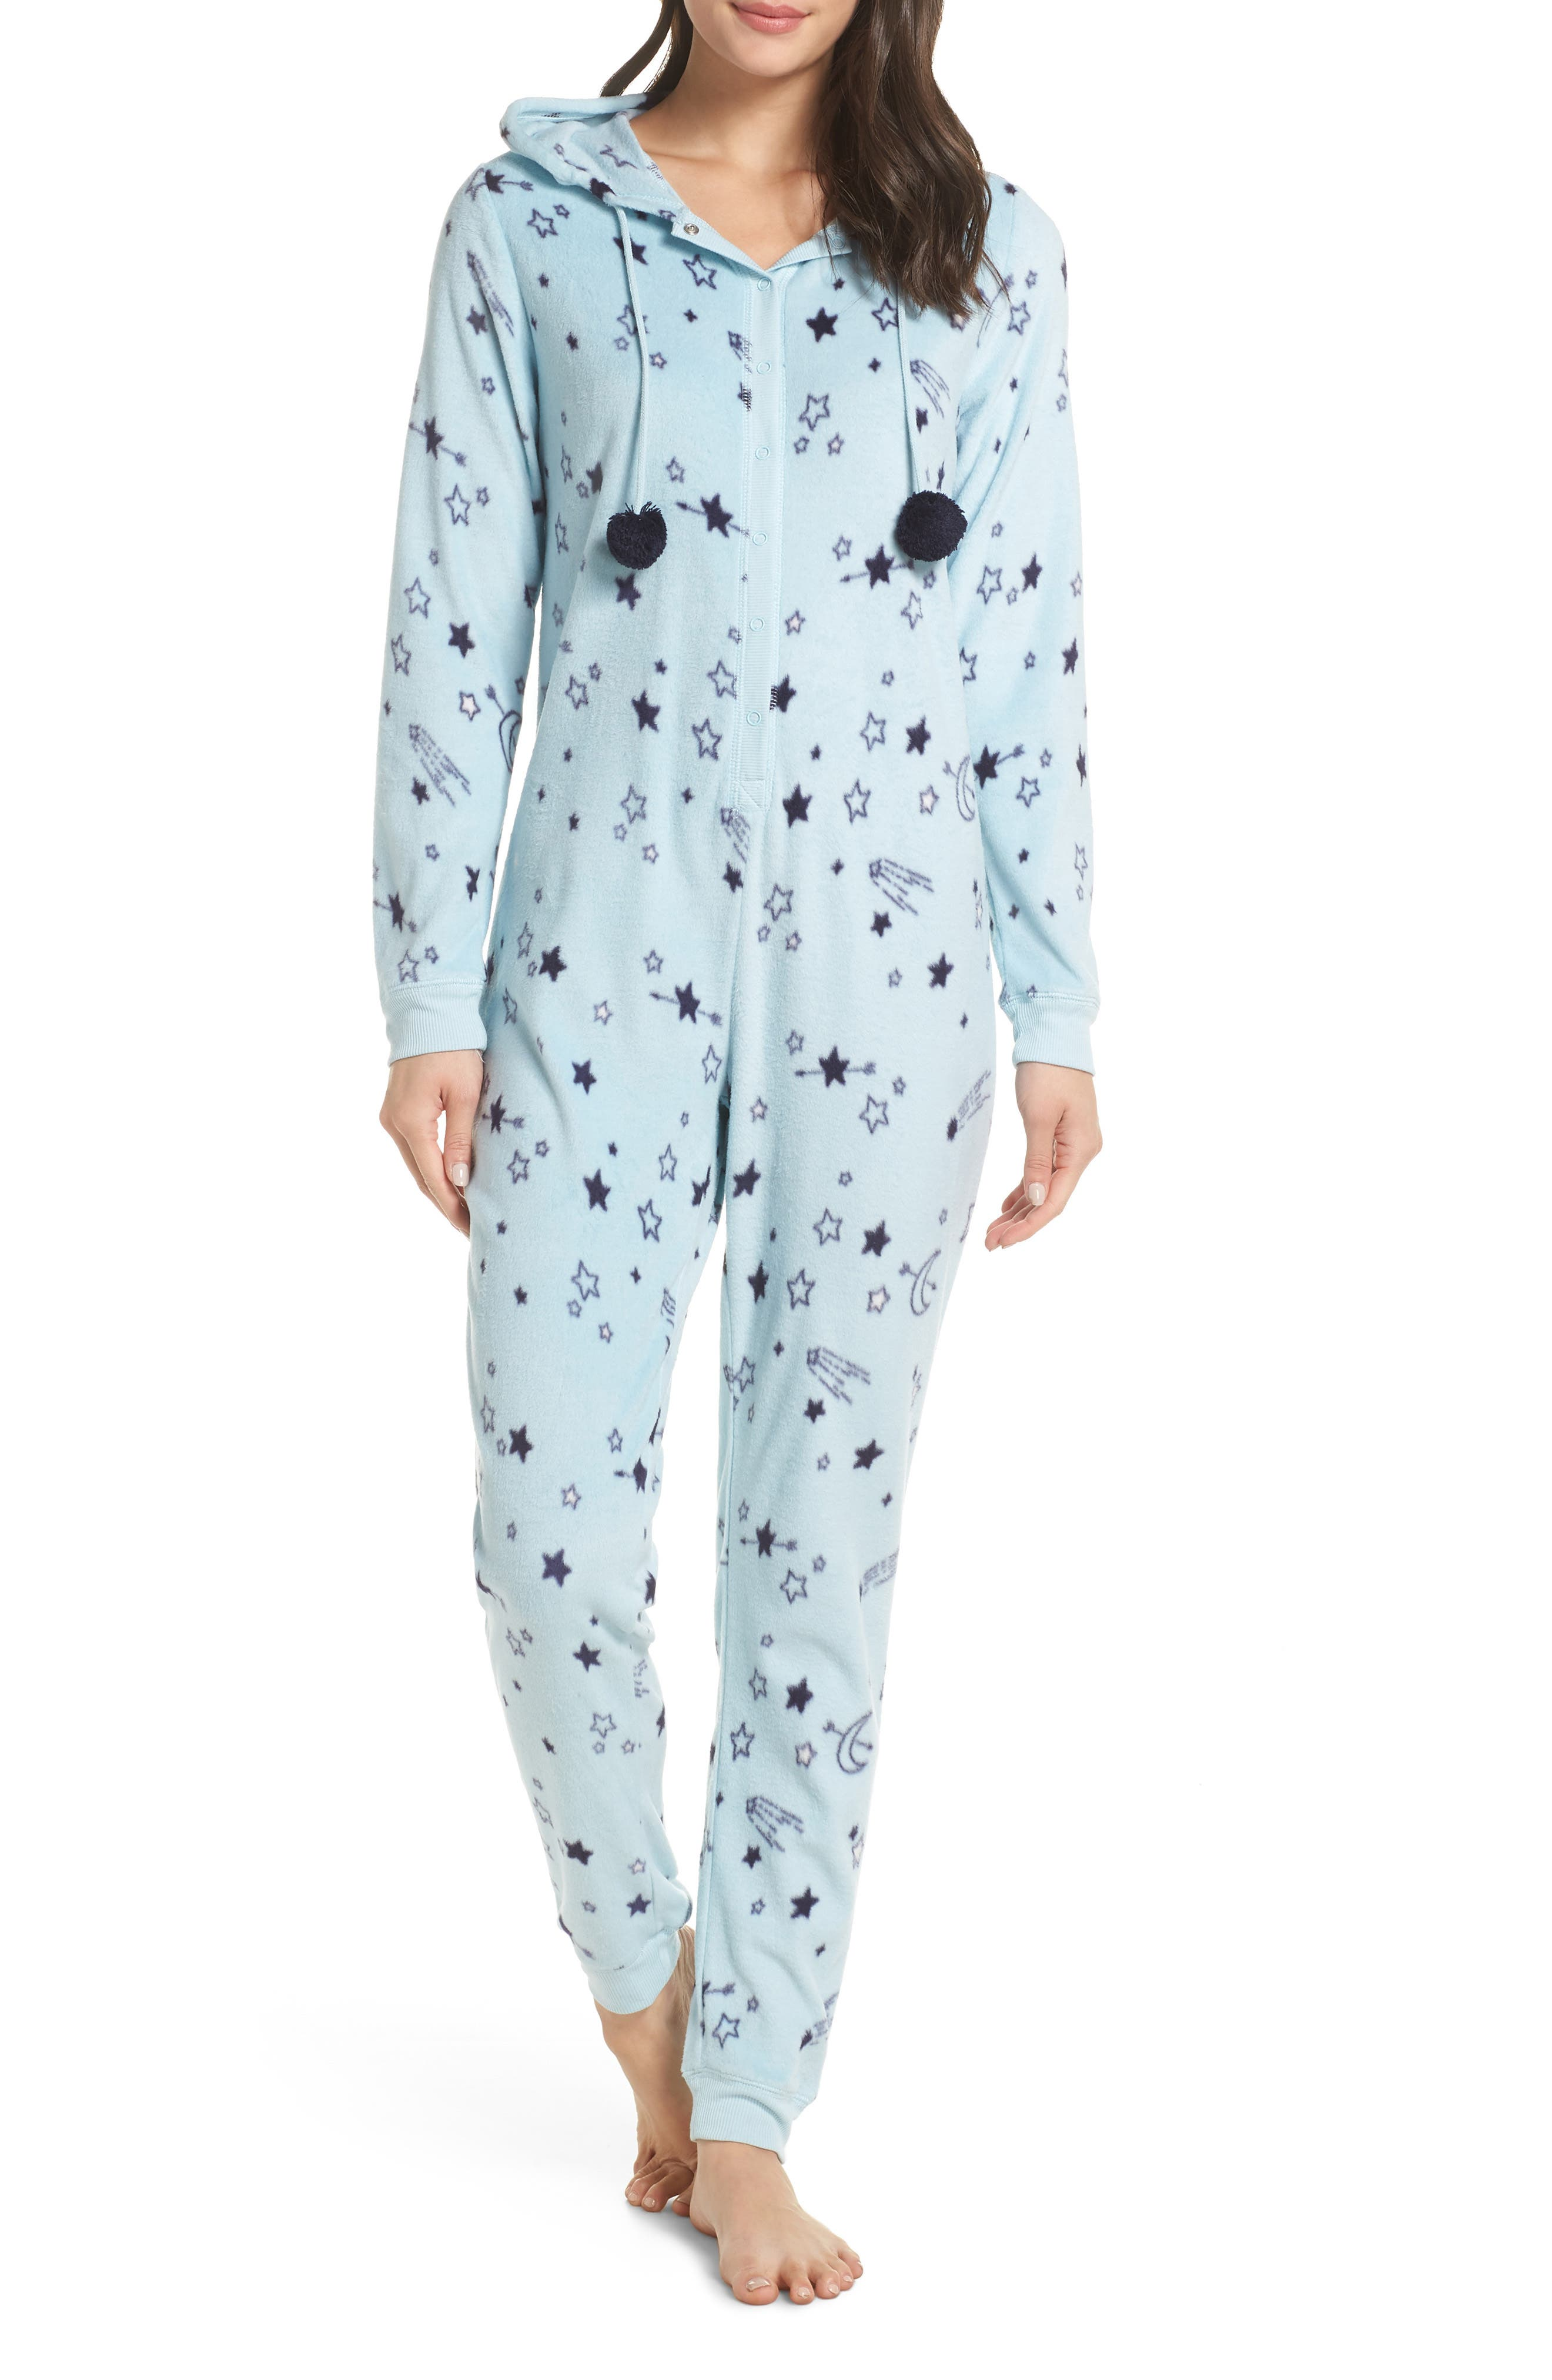 Hooded Pajama Jumpsuit,                         Main,                         color, BLUE OMPHALODES SHOOT 4 STARS